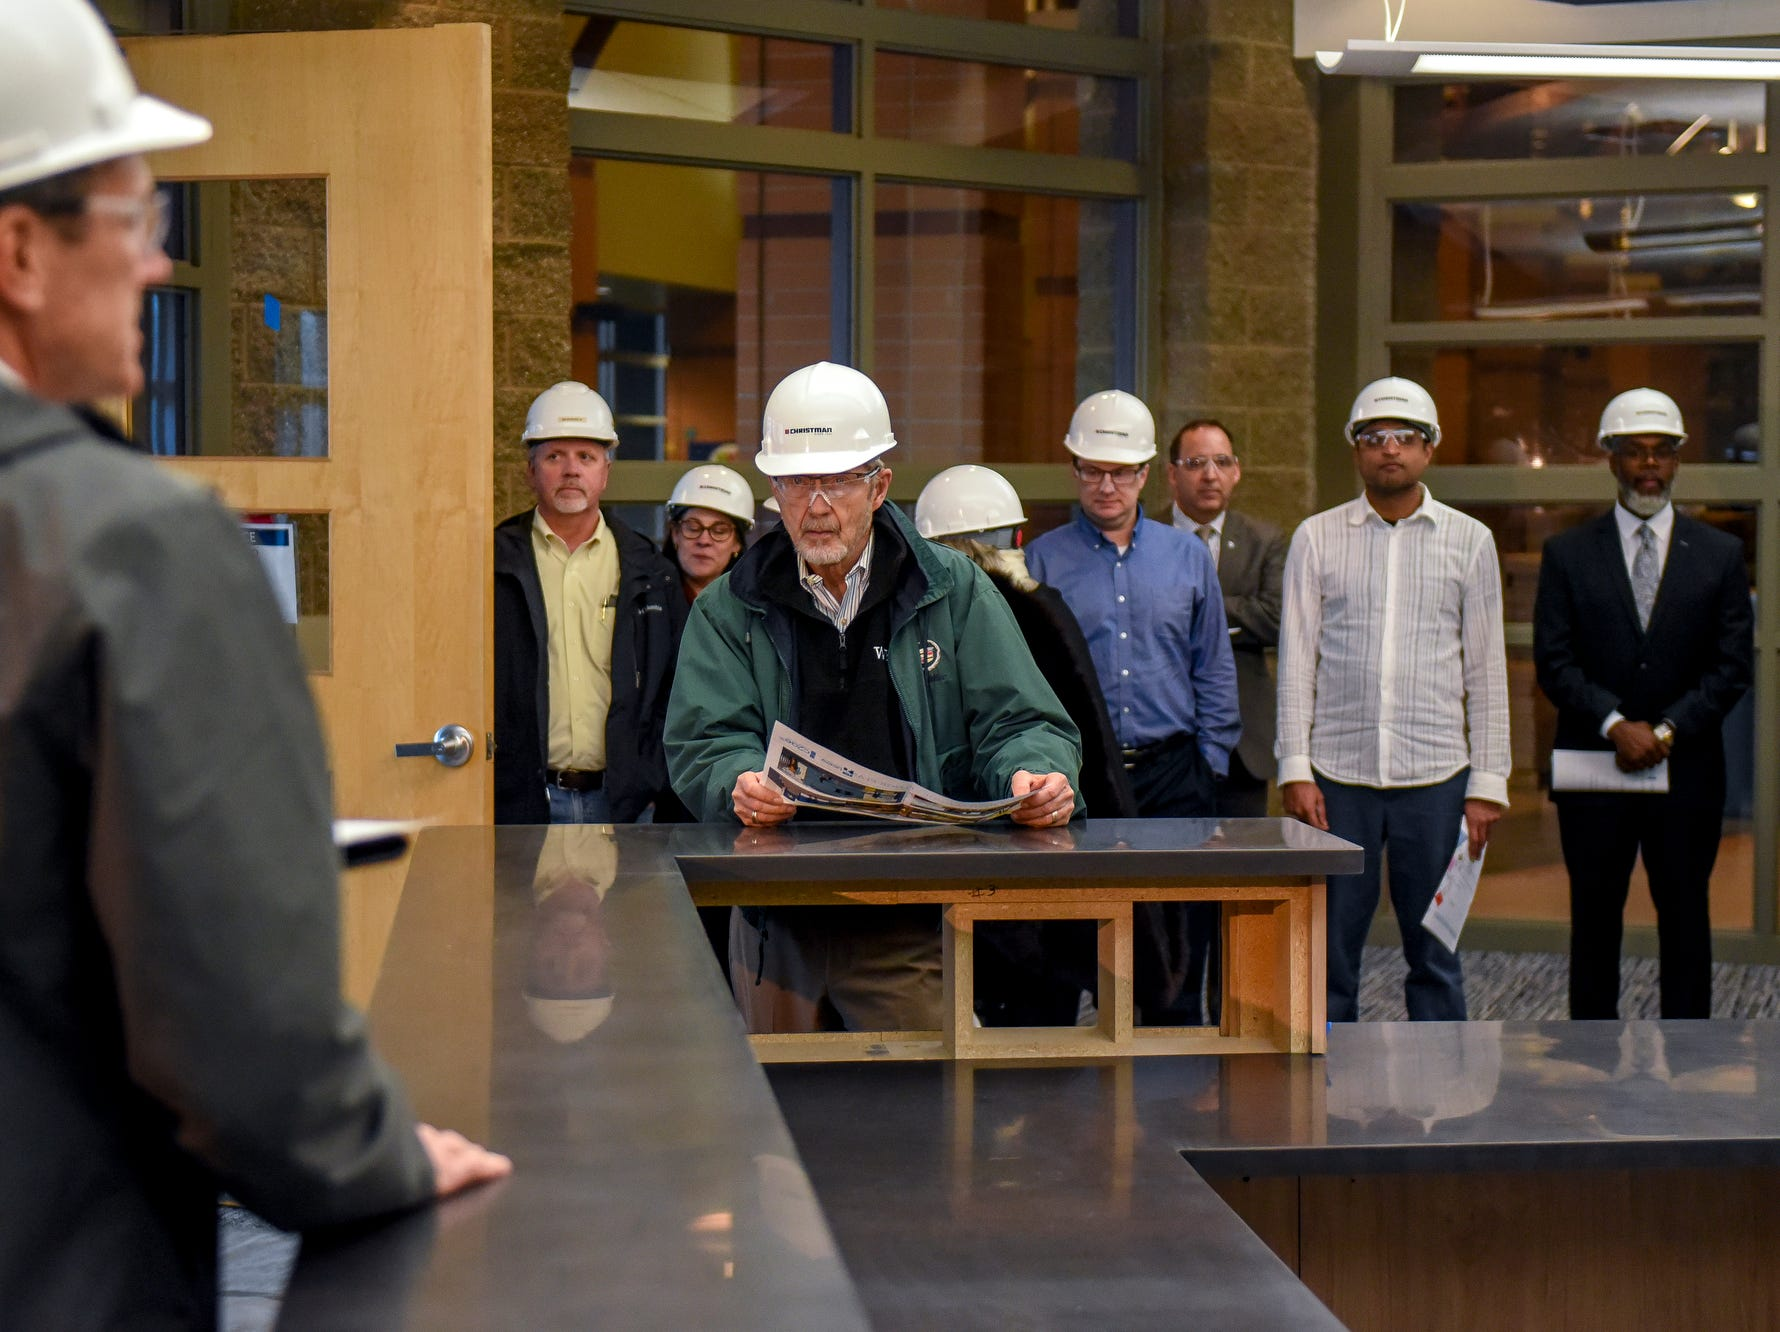 Former Lansing mayor David Hollister, center, listens in the main office during a tour of the construction of the new Eastern High School on Thursday, March 14, 2019, in Lansing. The project is being funded by the district's successful Pathway Promise millage, which was passed by voters in 2016. The building was formerly Pattengill Academy.